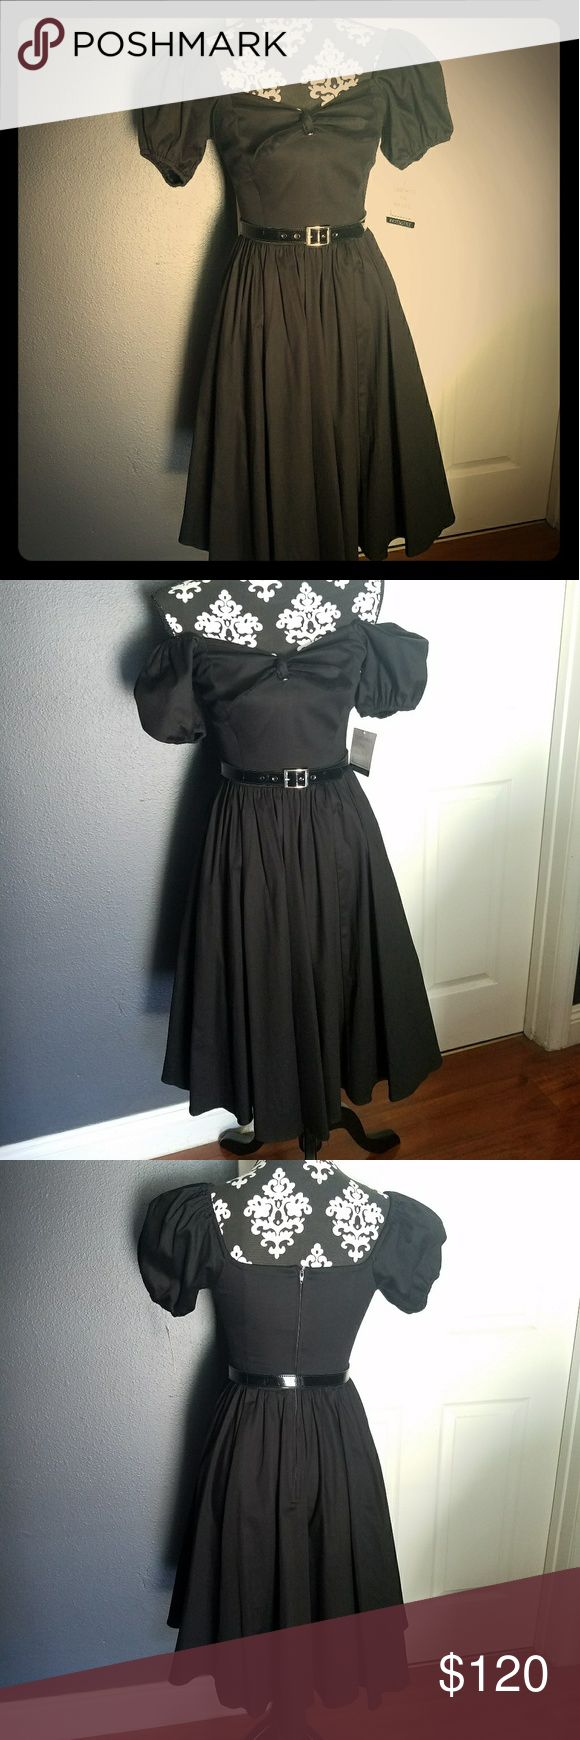 Vixen Swing Dress in Raven Black by Micheline Pitt New, never worn. Only tried on once. May be worn on or off shoulders. See photos above for details.  Website recommends sizing up if you are between sizes for a more relaxed fit. Vixen by Micheline Pitt Dresses Midi